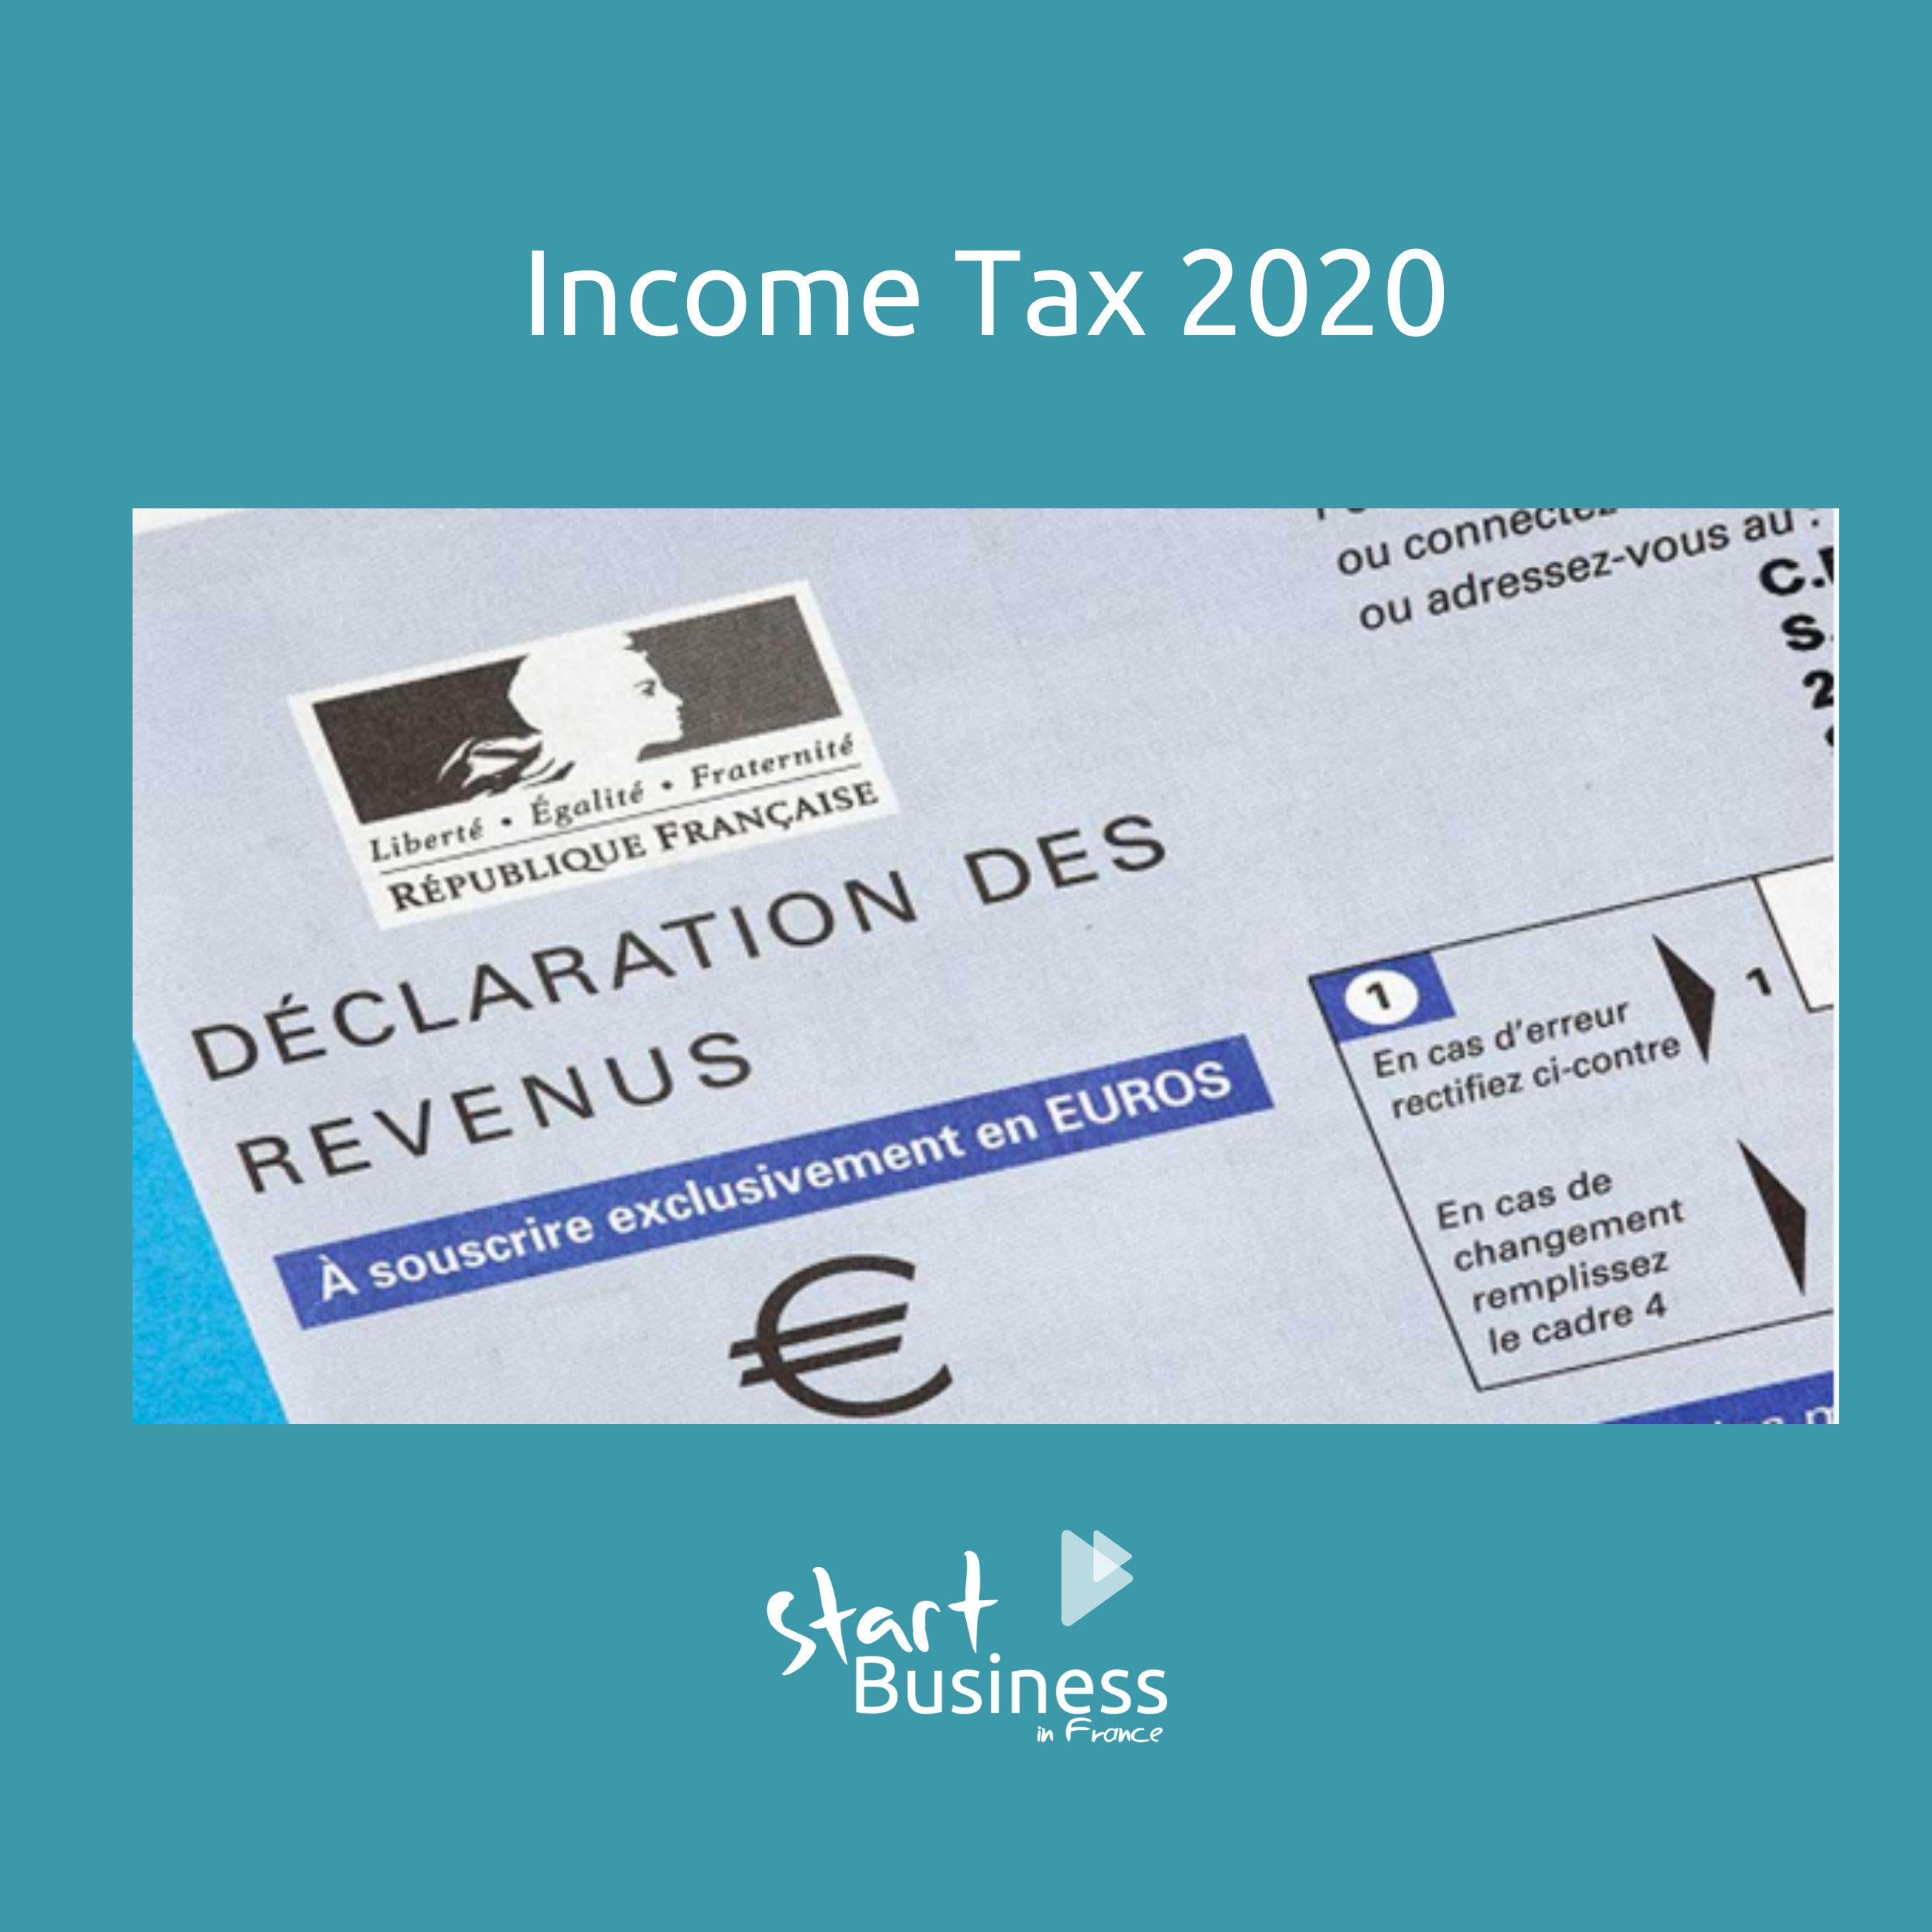 Getting ready for your 2020 French income tax declaration